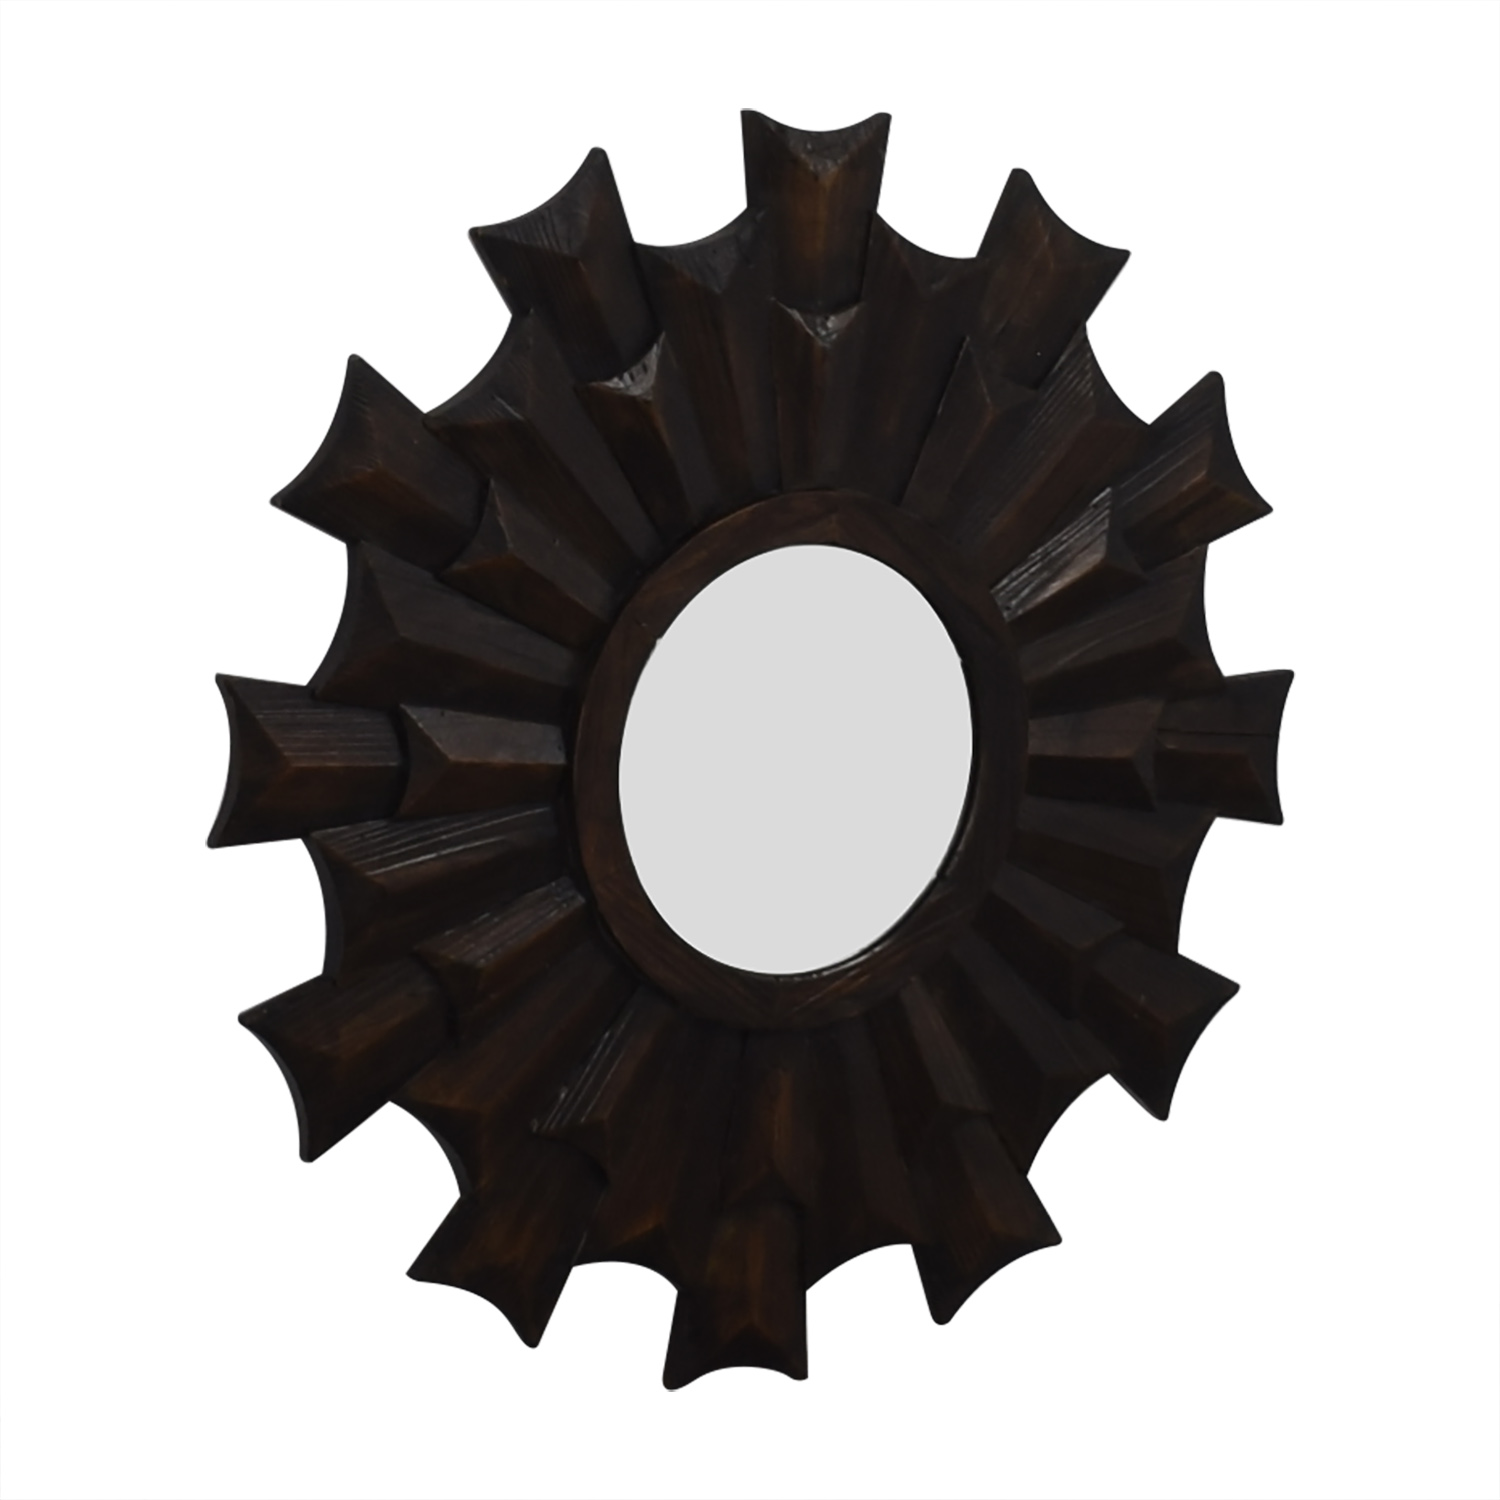 Homegoods Wood Starburst Wall Mirror for sale